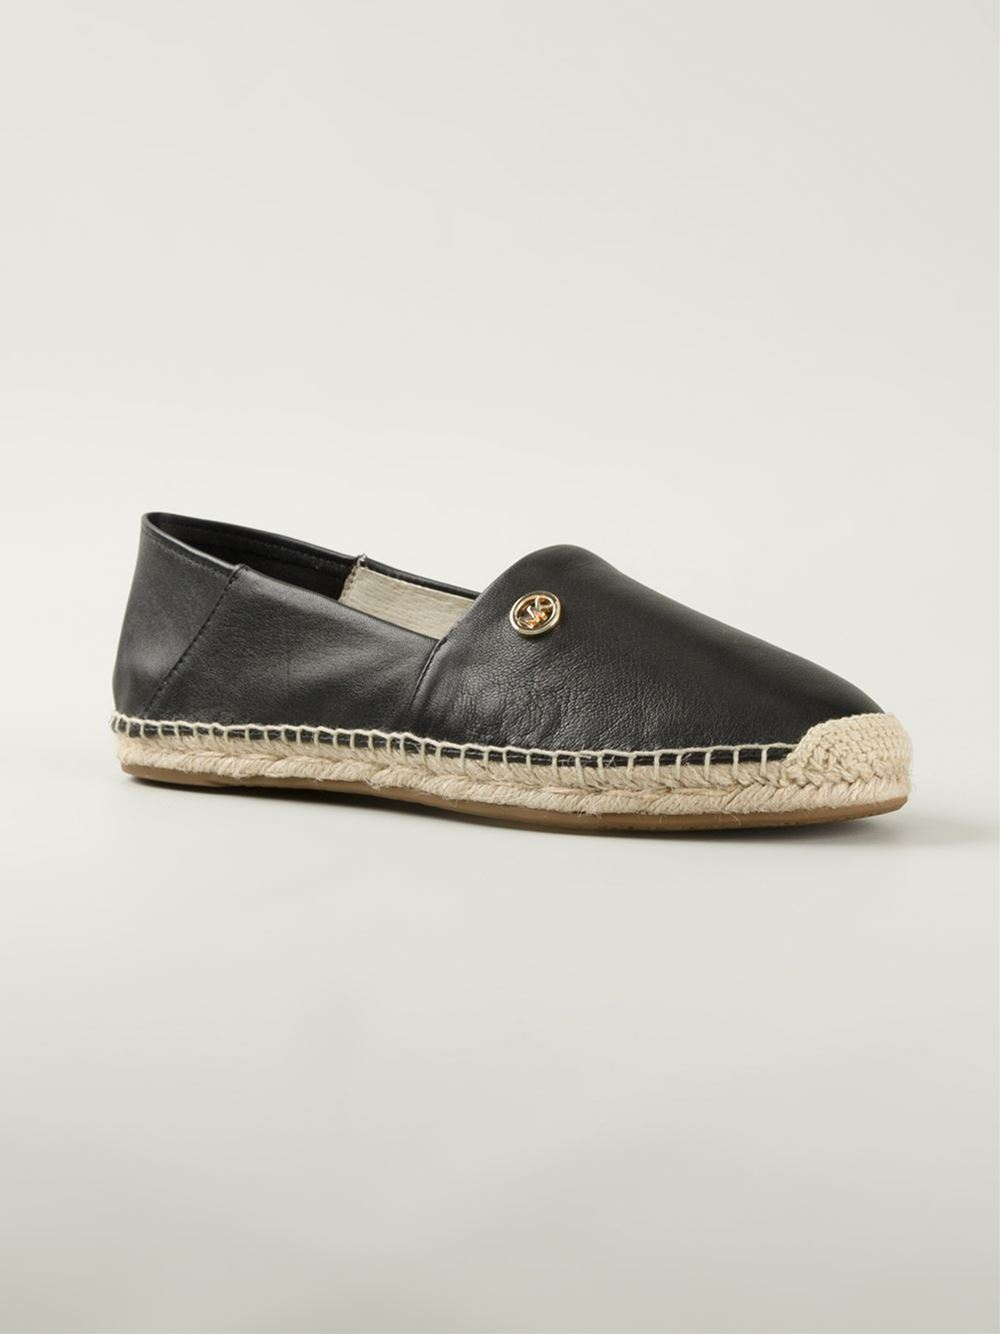 michael michael kors leather espadrilles in black lyst. Black Bedroom Furniture Sets. Home Design Ideas